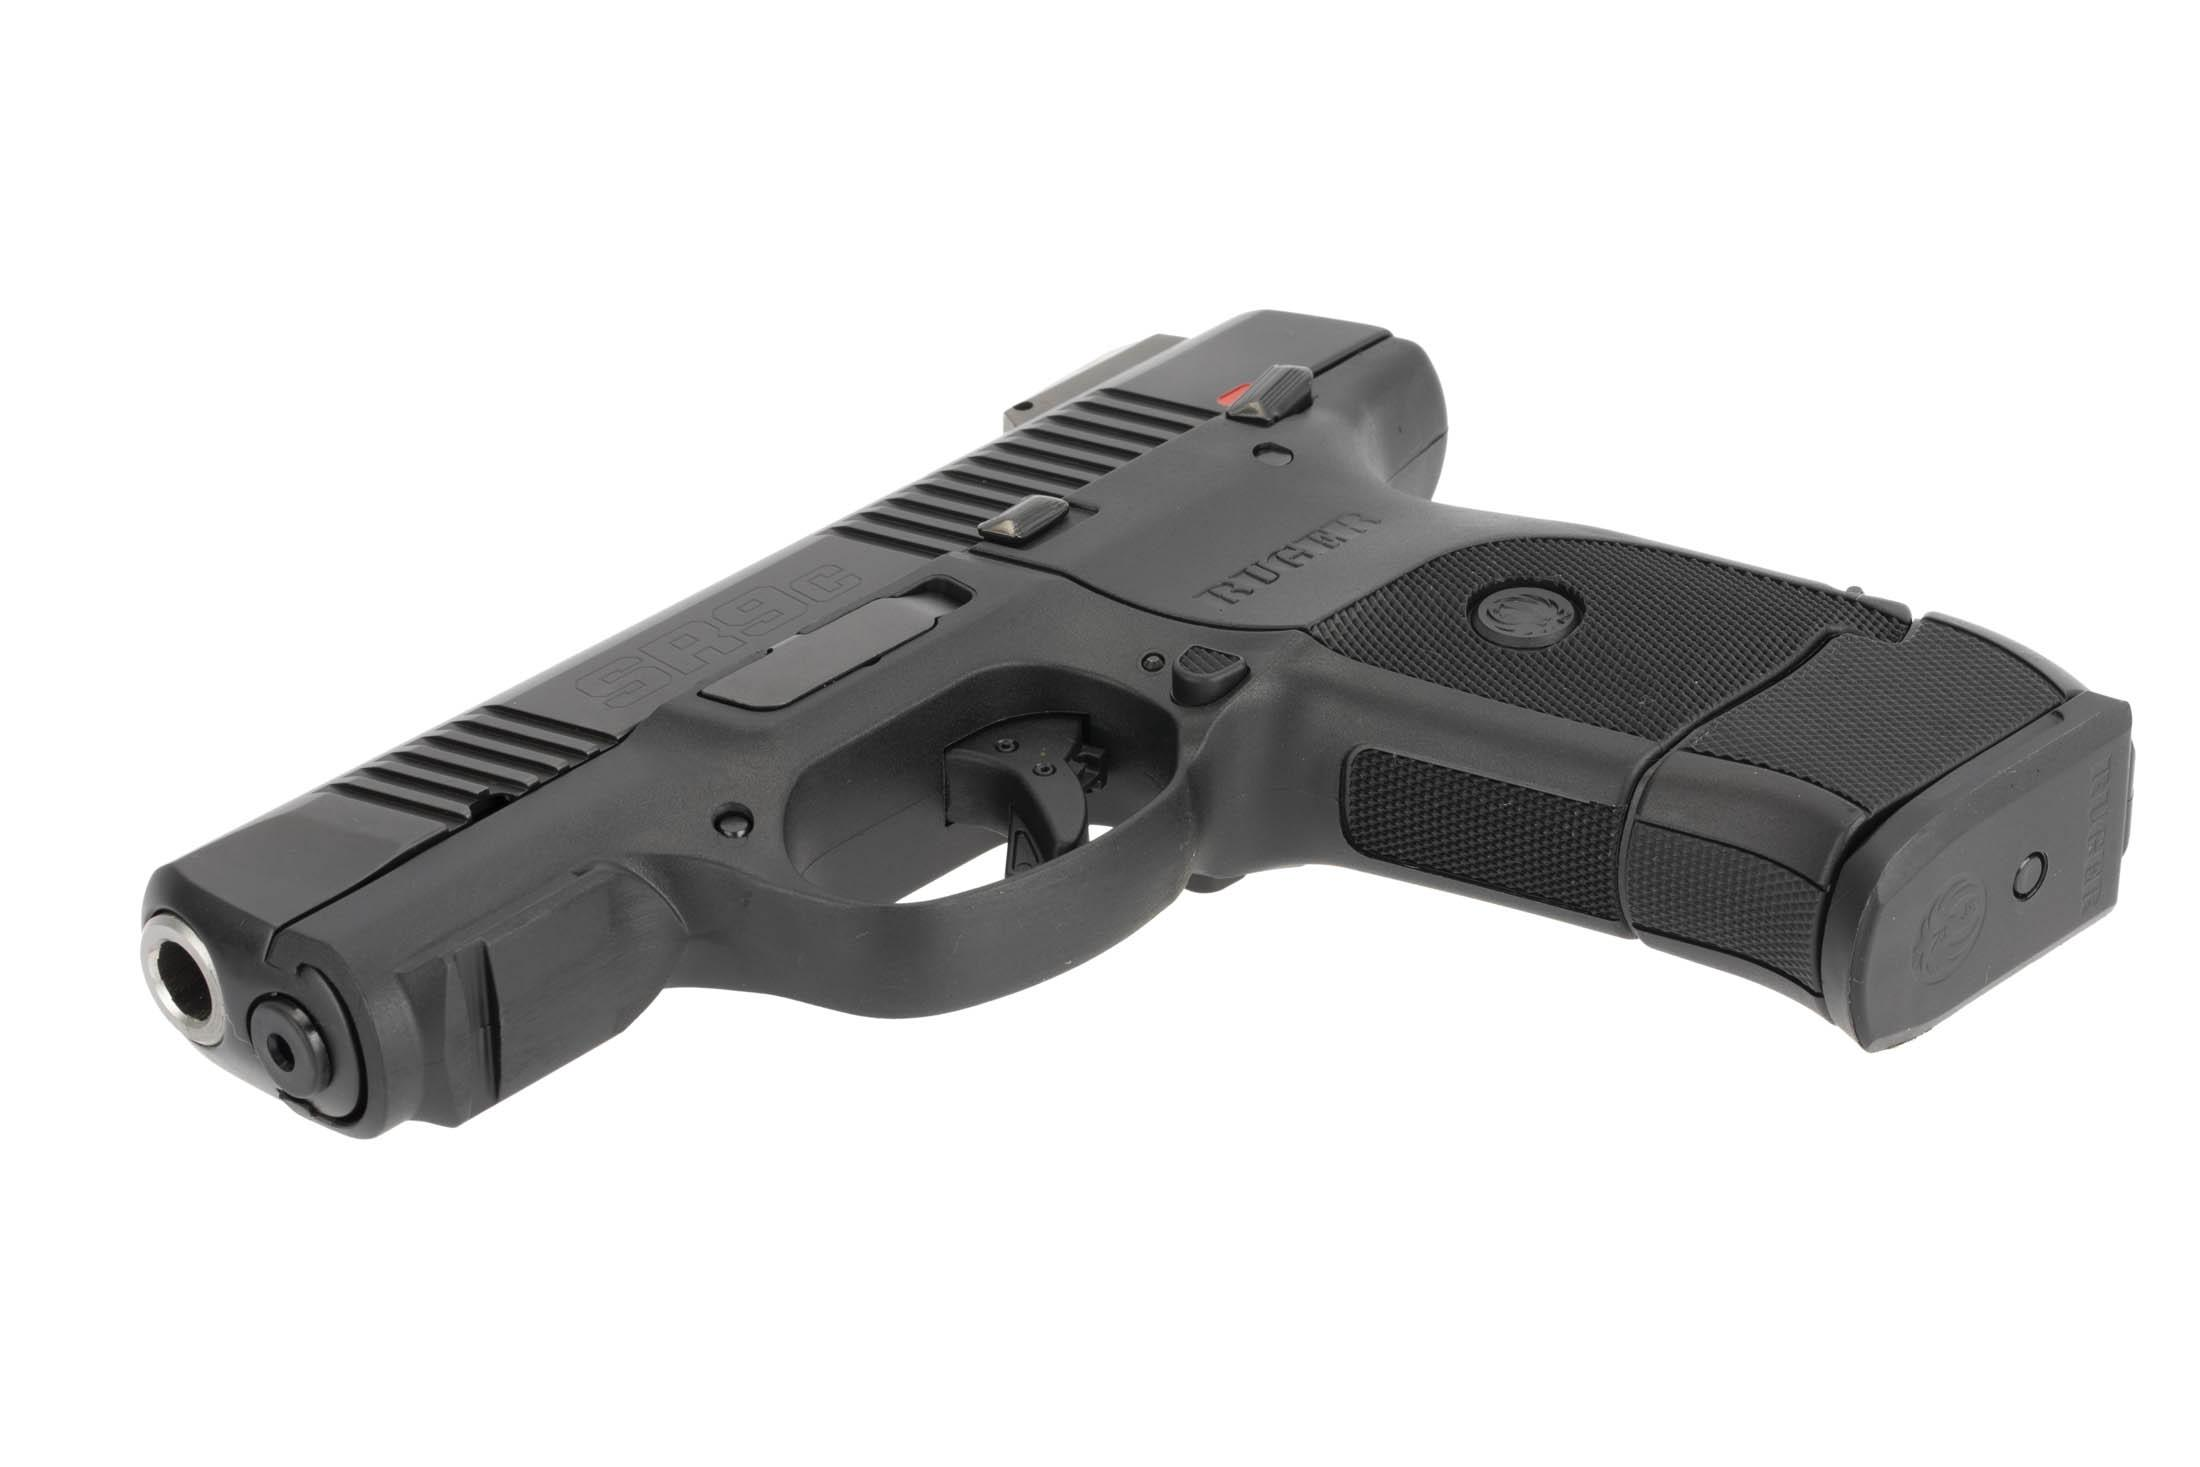 The Ruger SR9c features a customizable grip